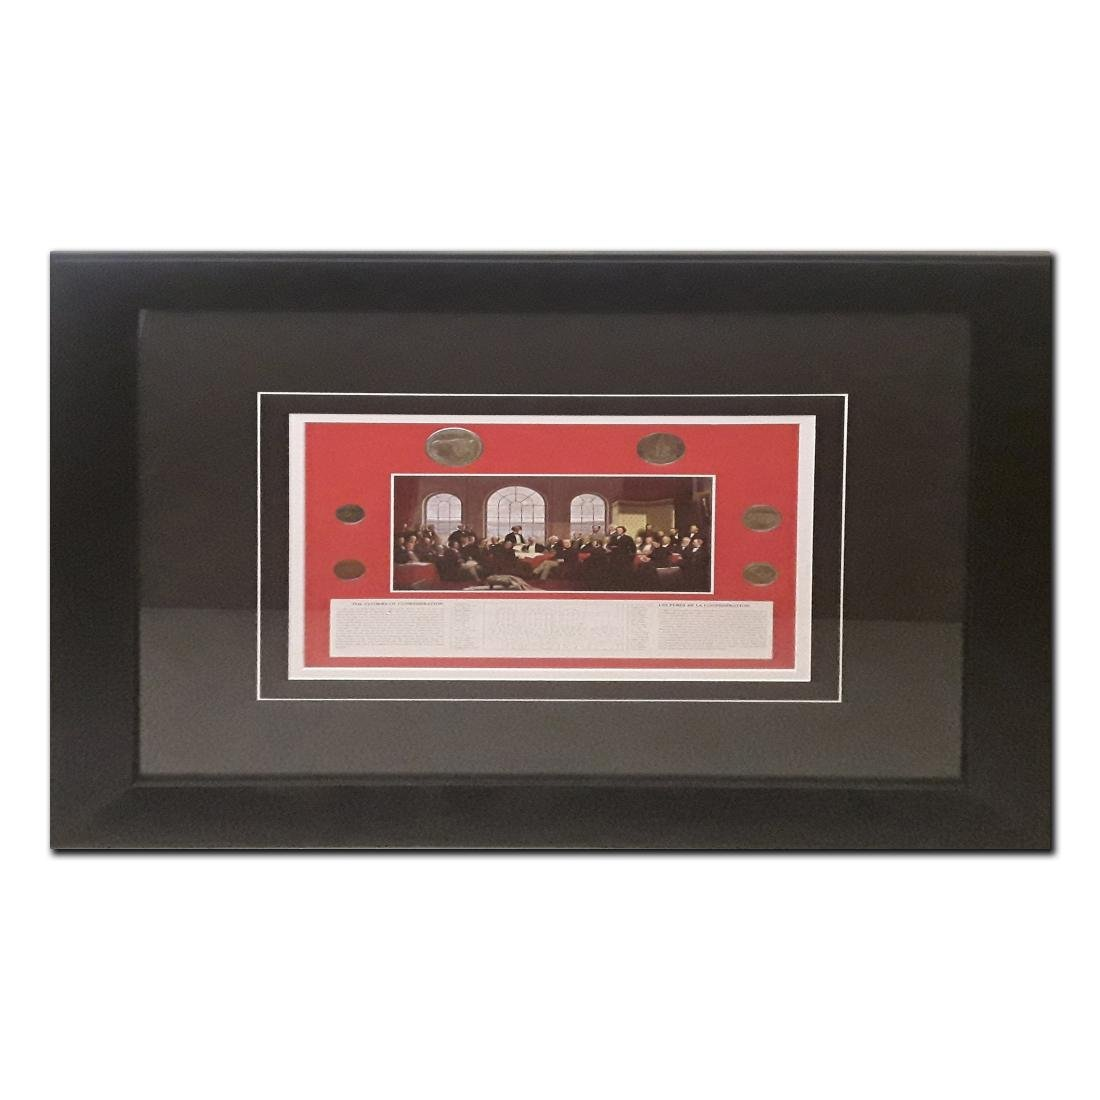 The Fathers of Confederation' print with a 1967